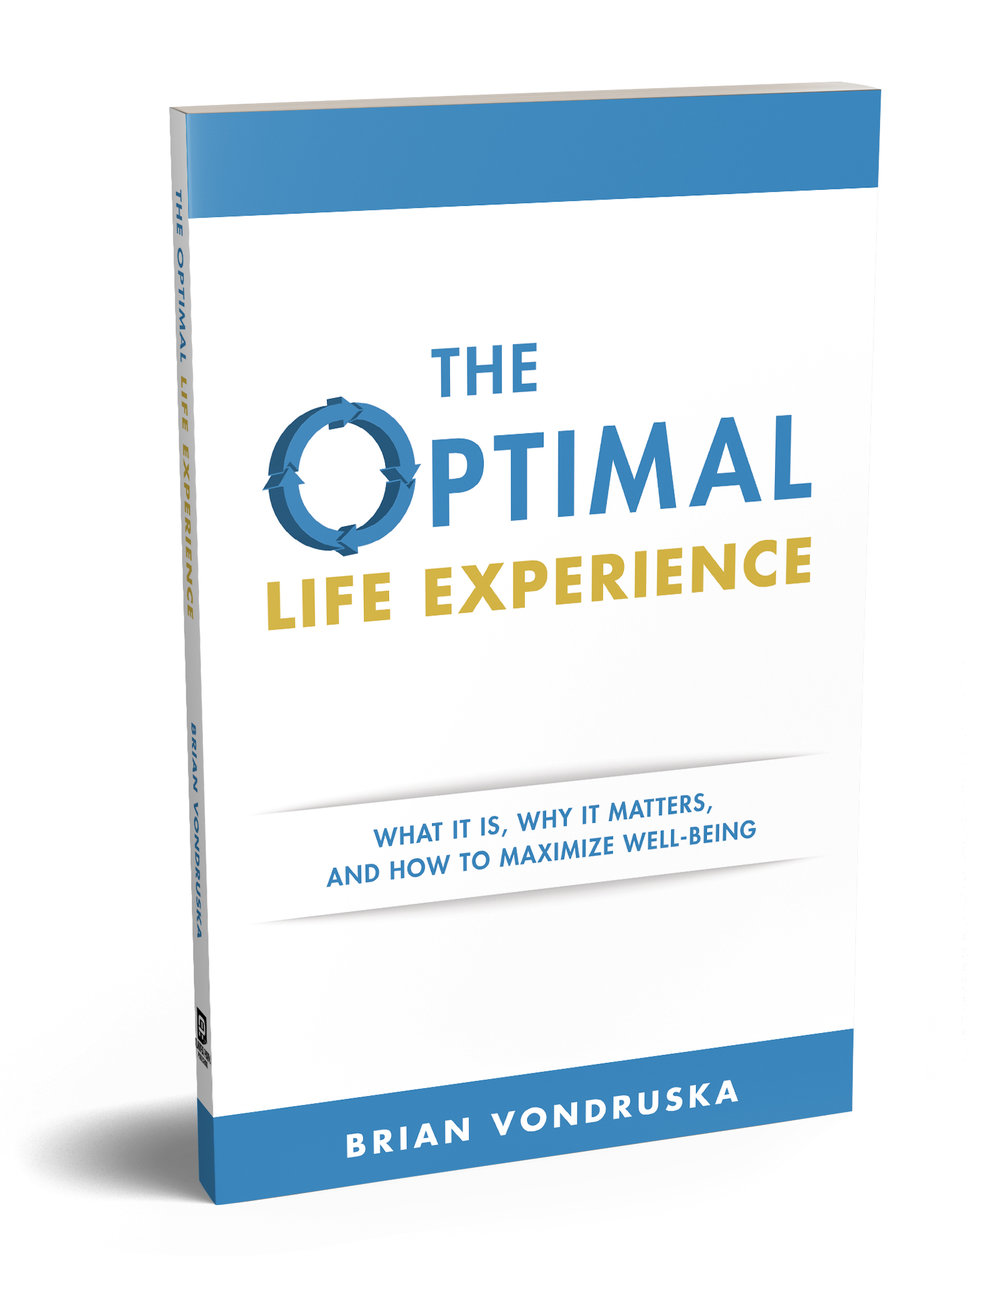 Title : The Optimal Life Experience:  What It Is, Why It Matters, and How to Create Maximized Well-Being   Author:  Brian Vondruska  Publisher : Aurora Park Publishing  Scheduled Date of Publication : September 2017  Retail Price : $14.95 US (Paperback); $8.99 US (ebook)  ISBN : 978-0-9987511-0-8 (paperback); 978-0-9987511-1-5 (ebook)   order on amazon .